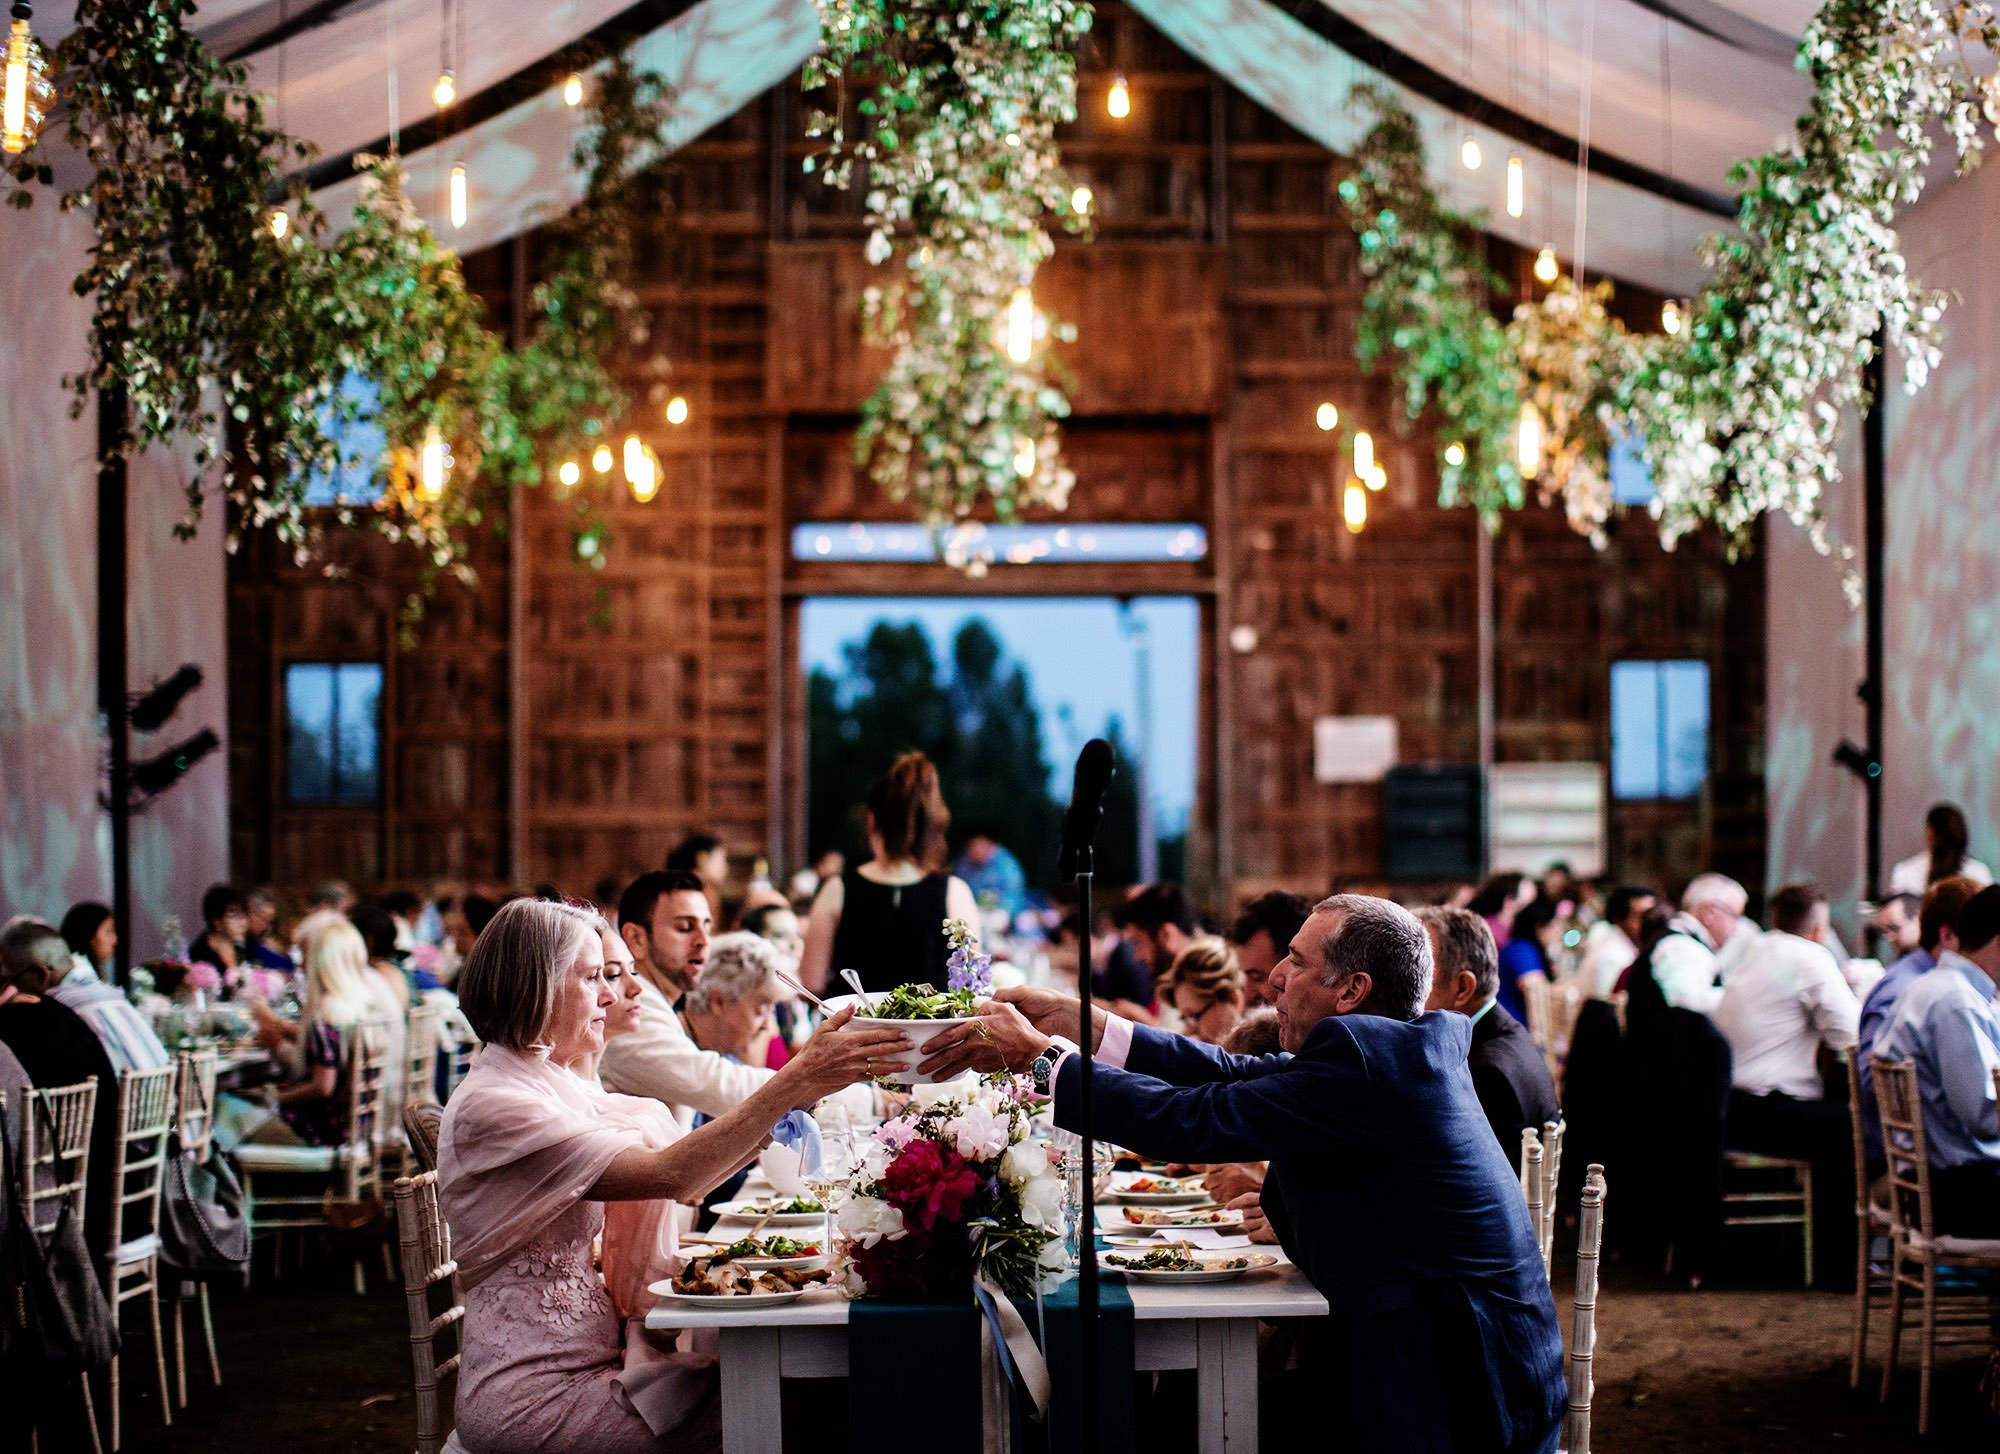 Guests eat dinner during their Mesa Farm Wedding.